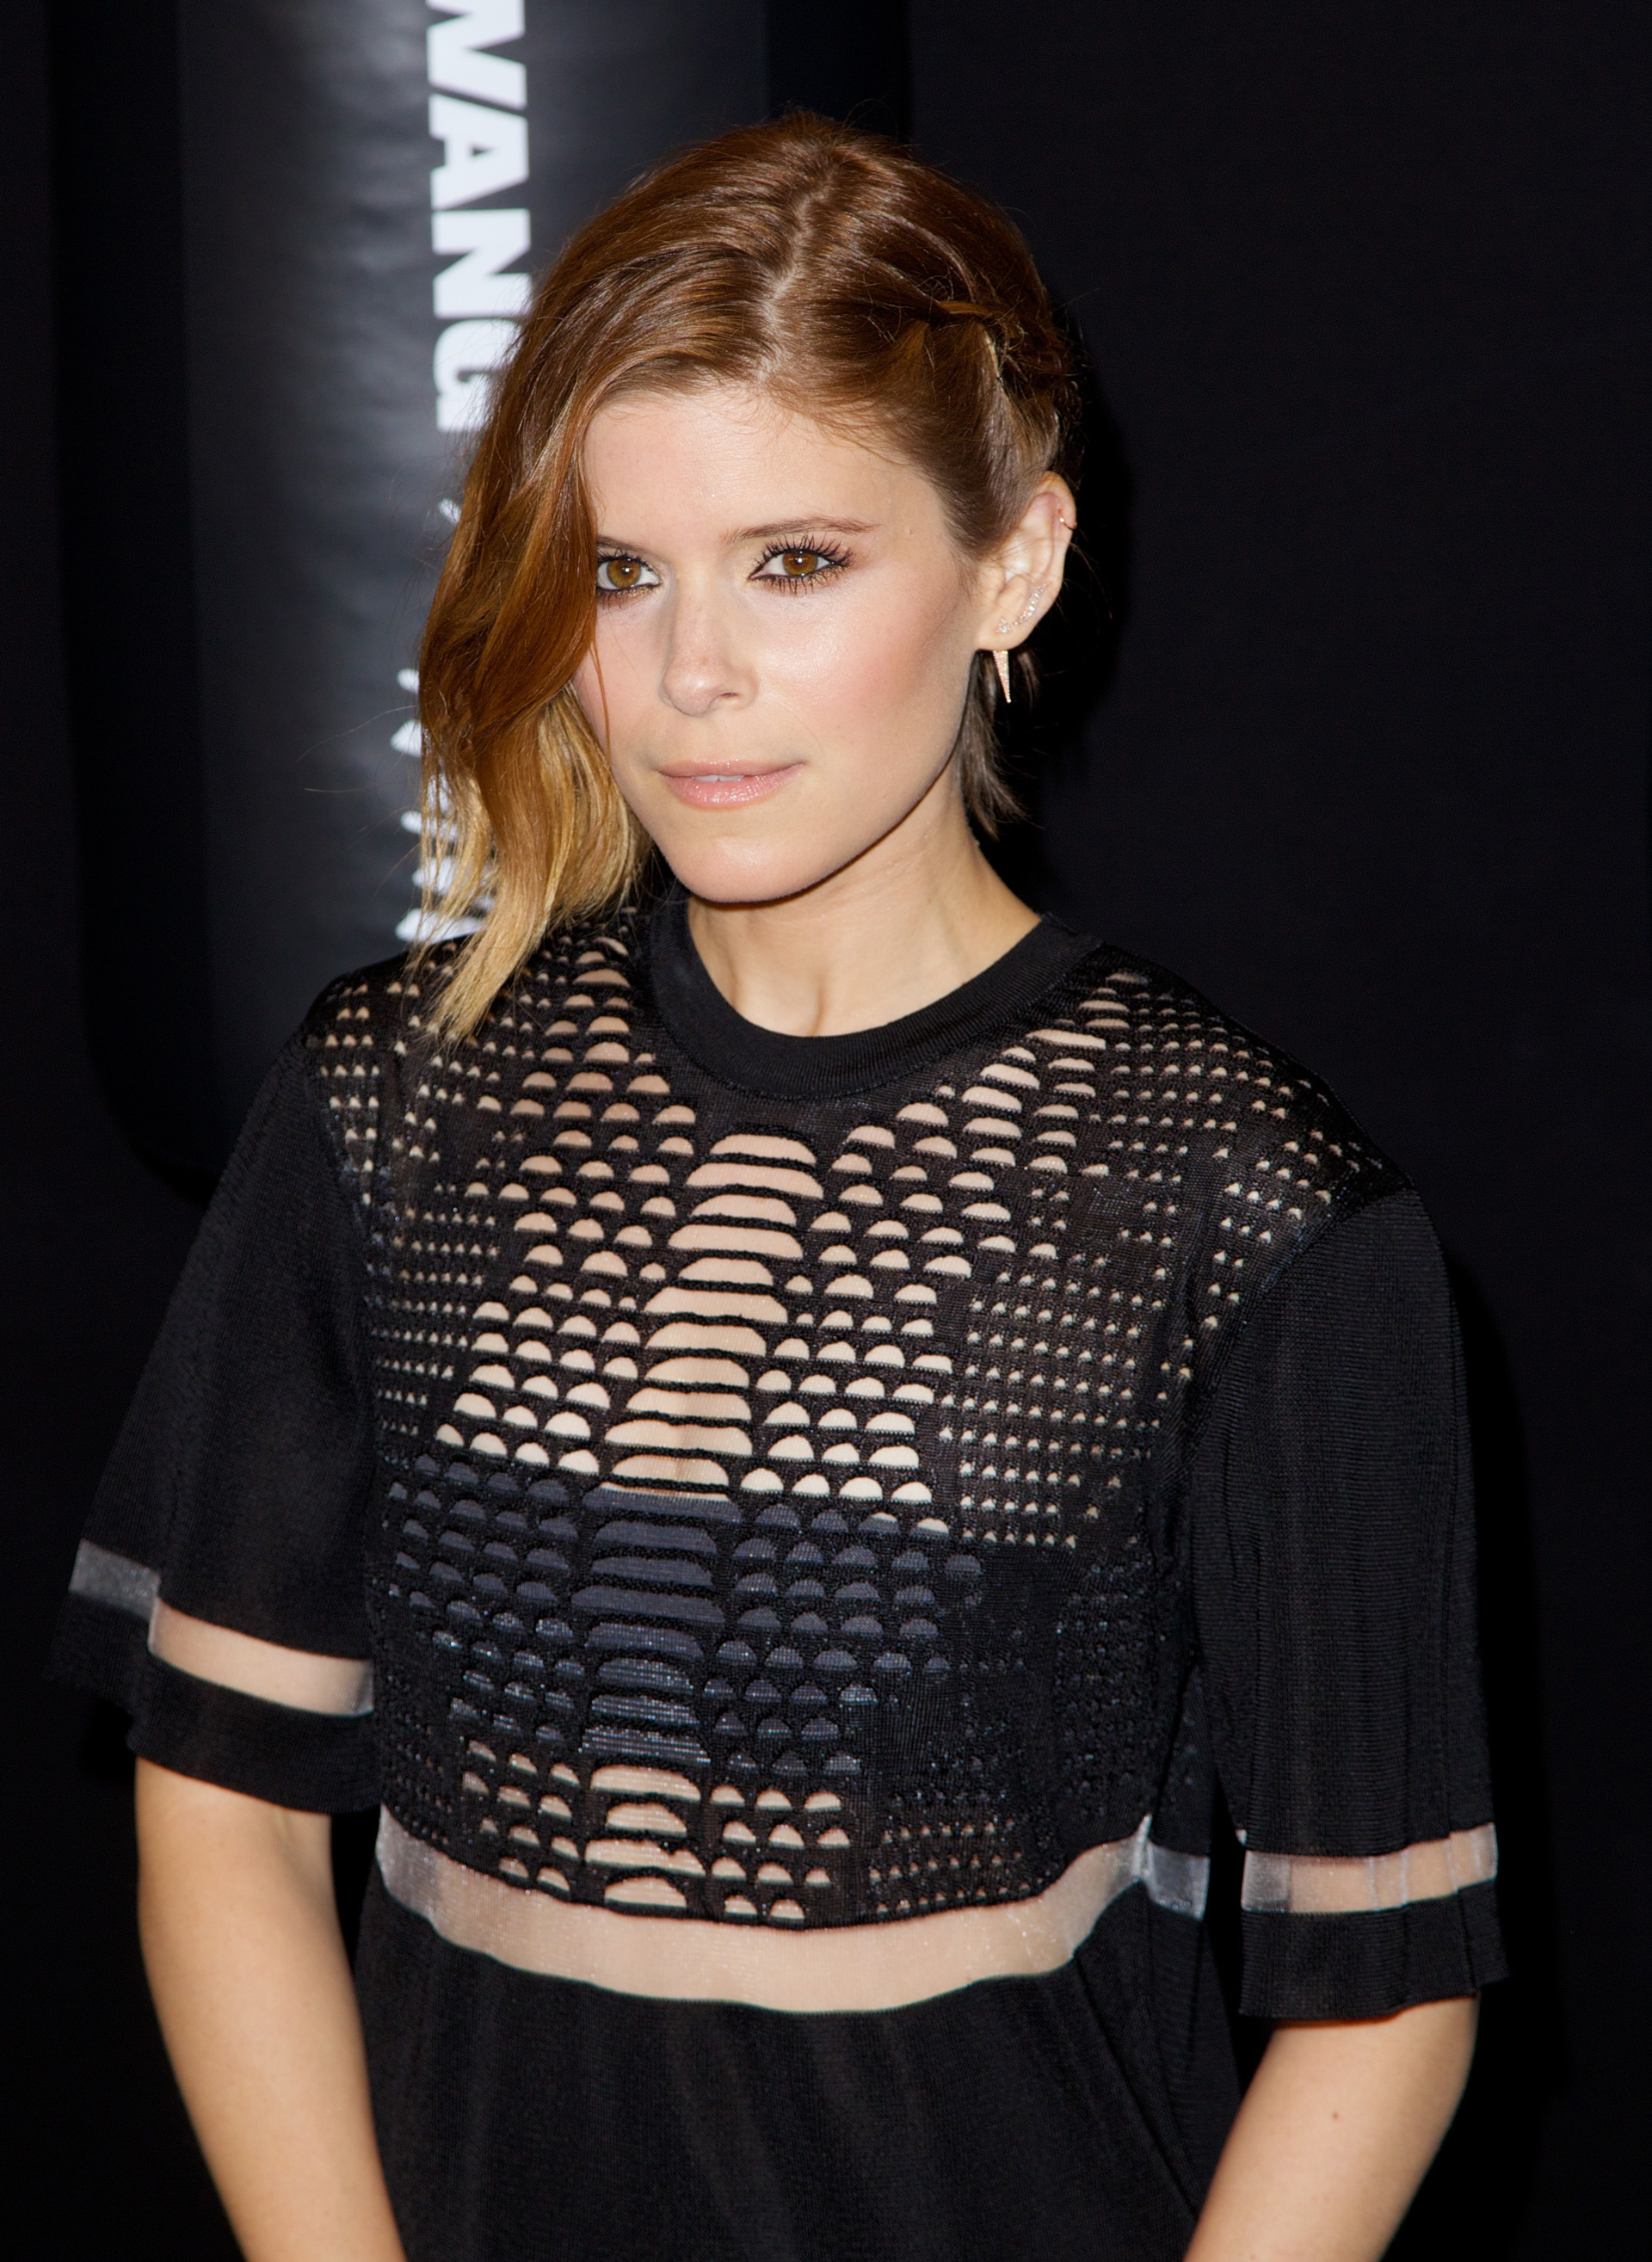 The new braid: Kate Mara